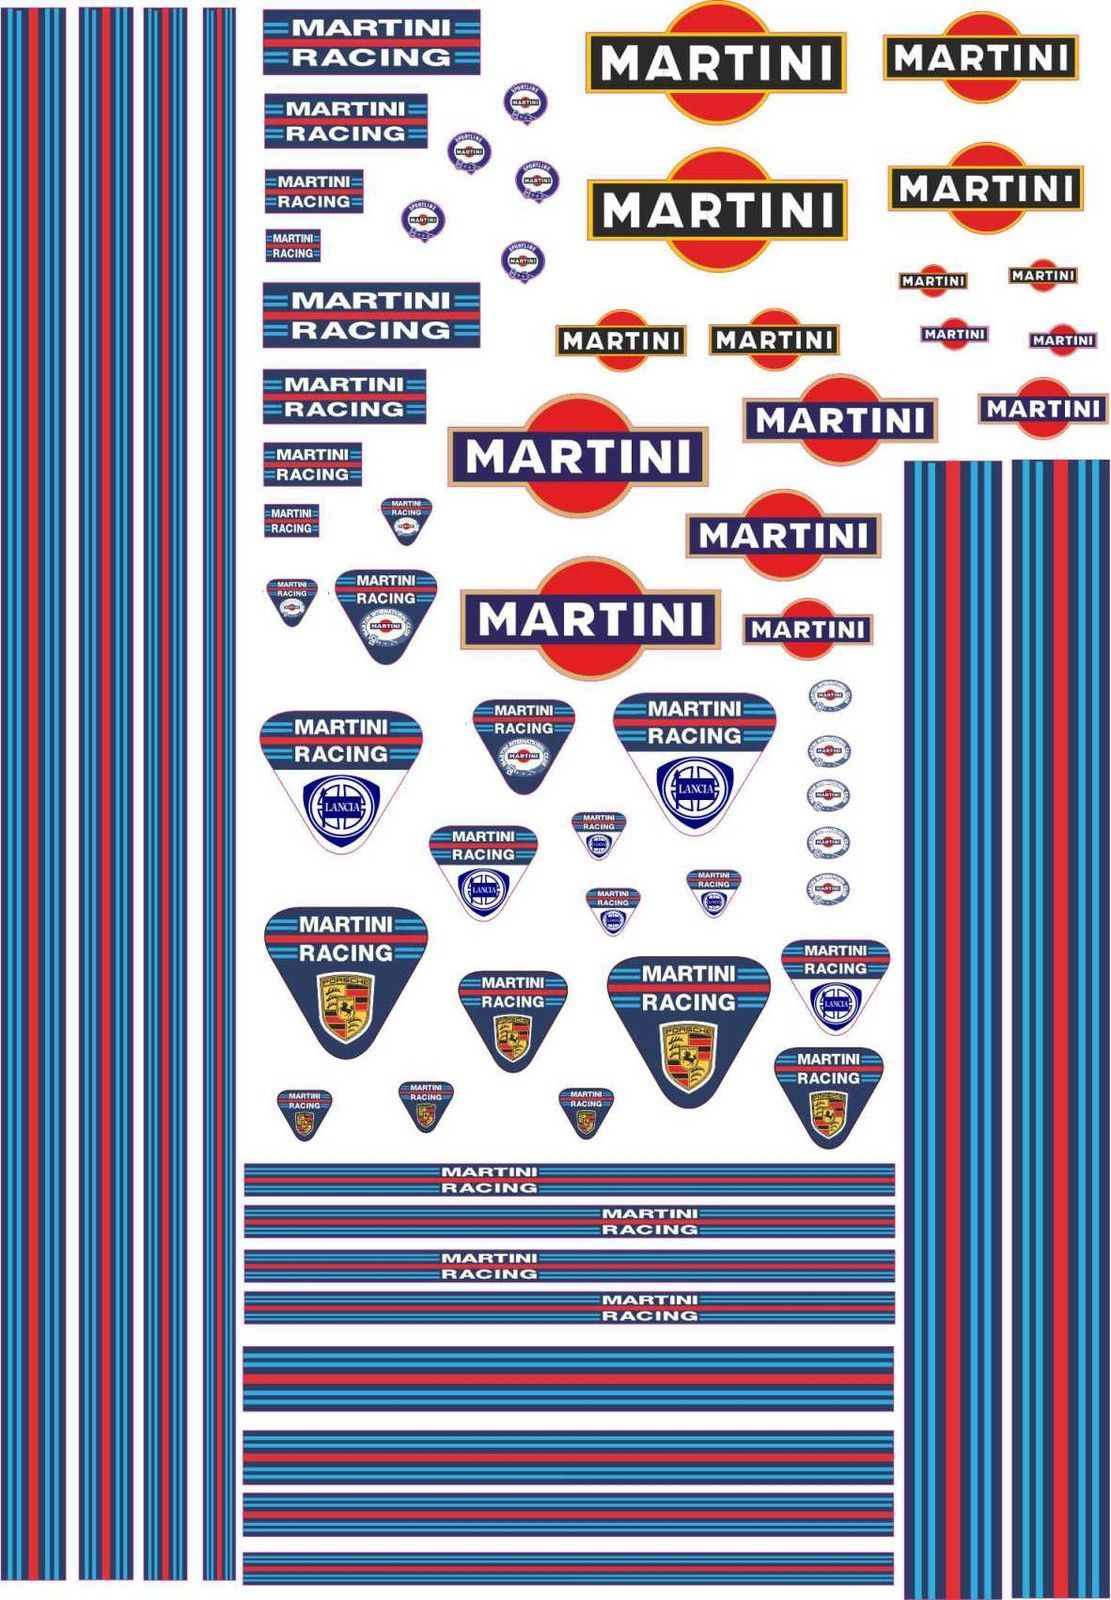 1 18 decals martini for gt 40